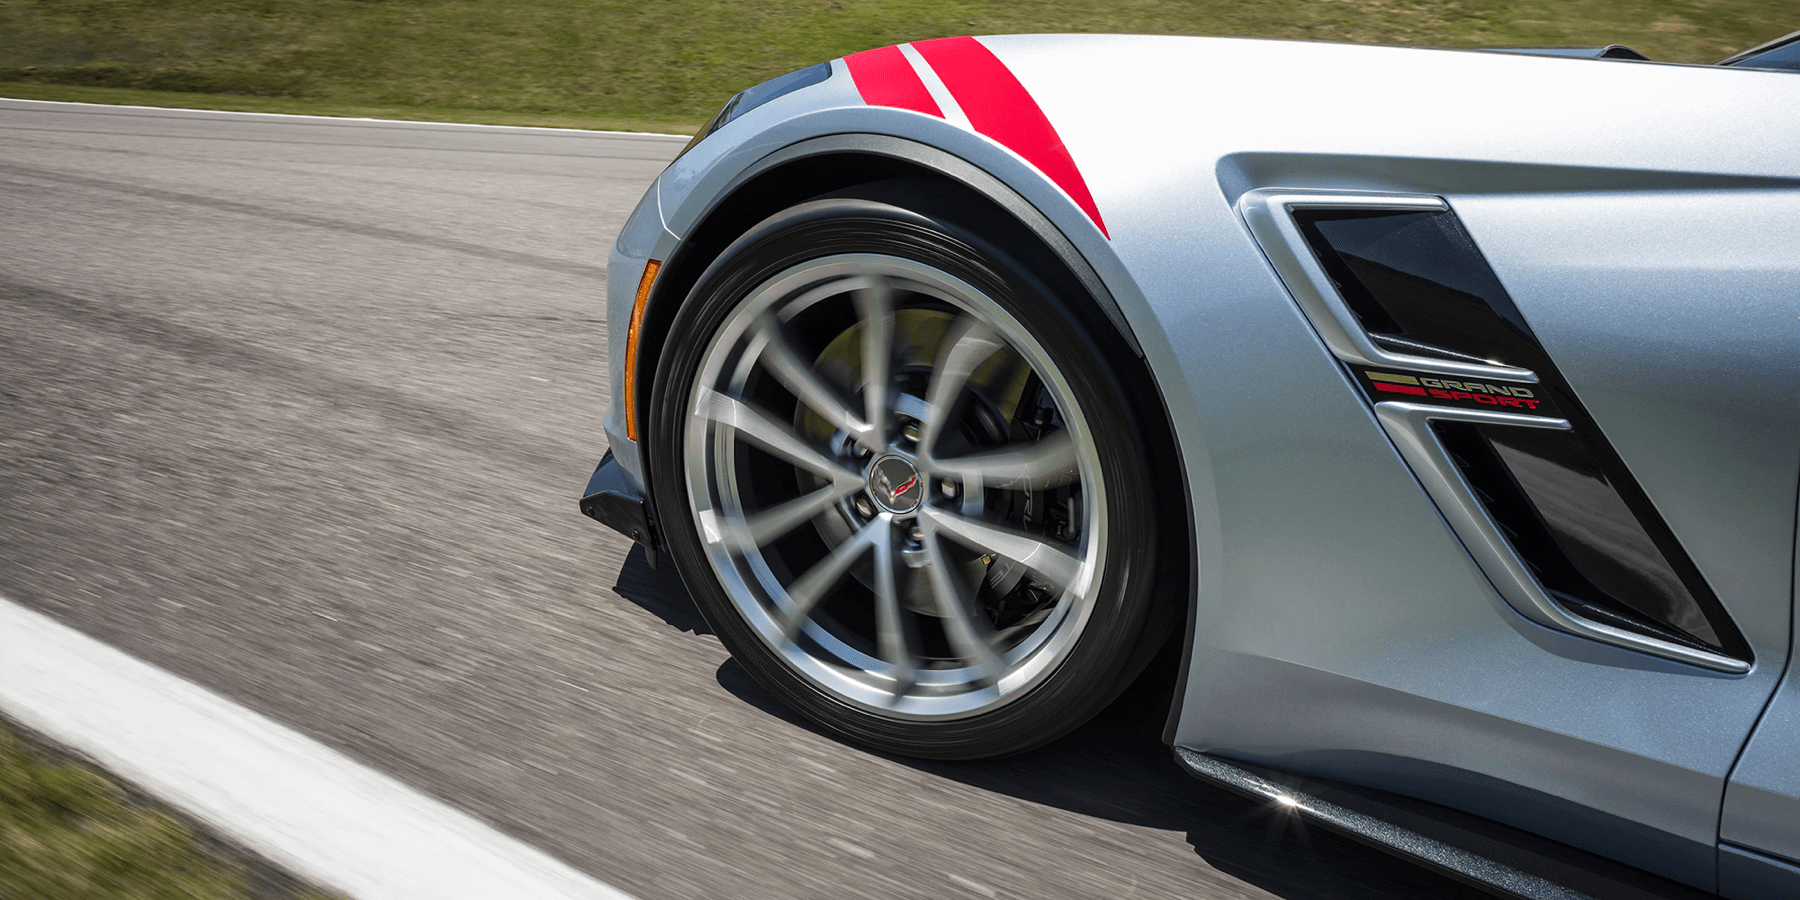 view of front left wheel and air vent of Corvette Z06